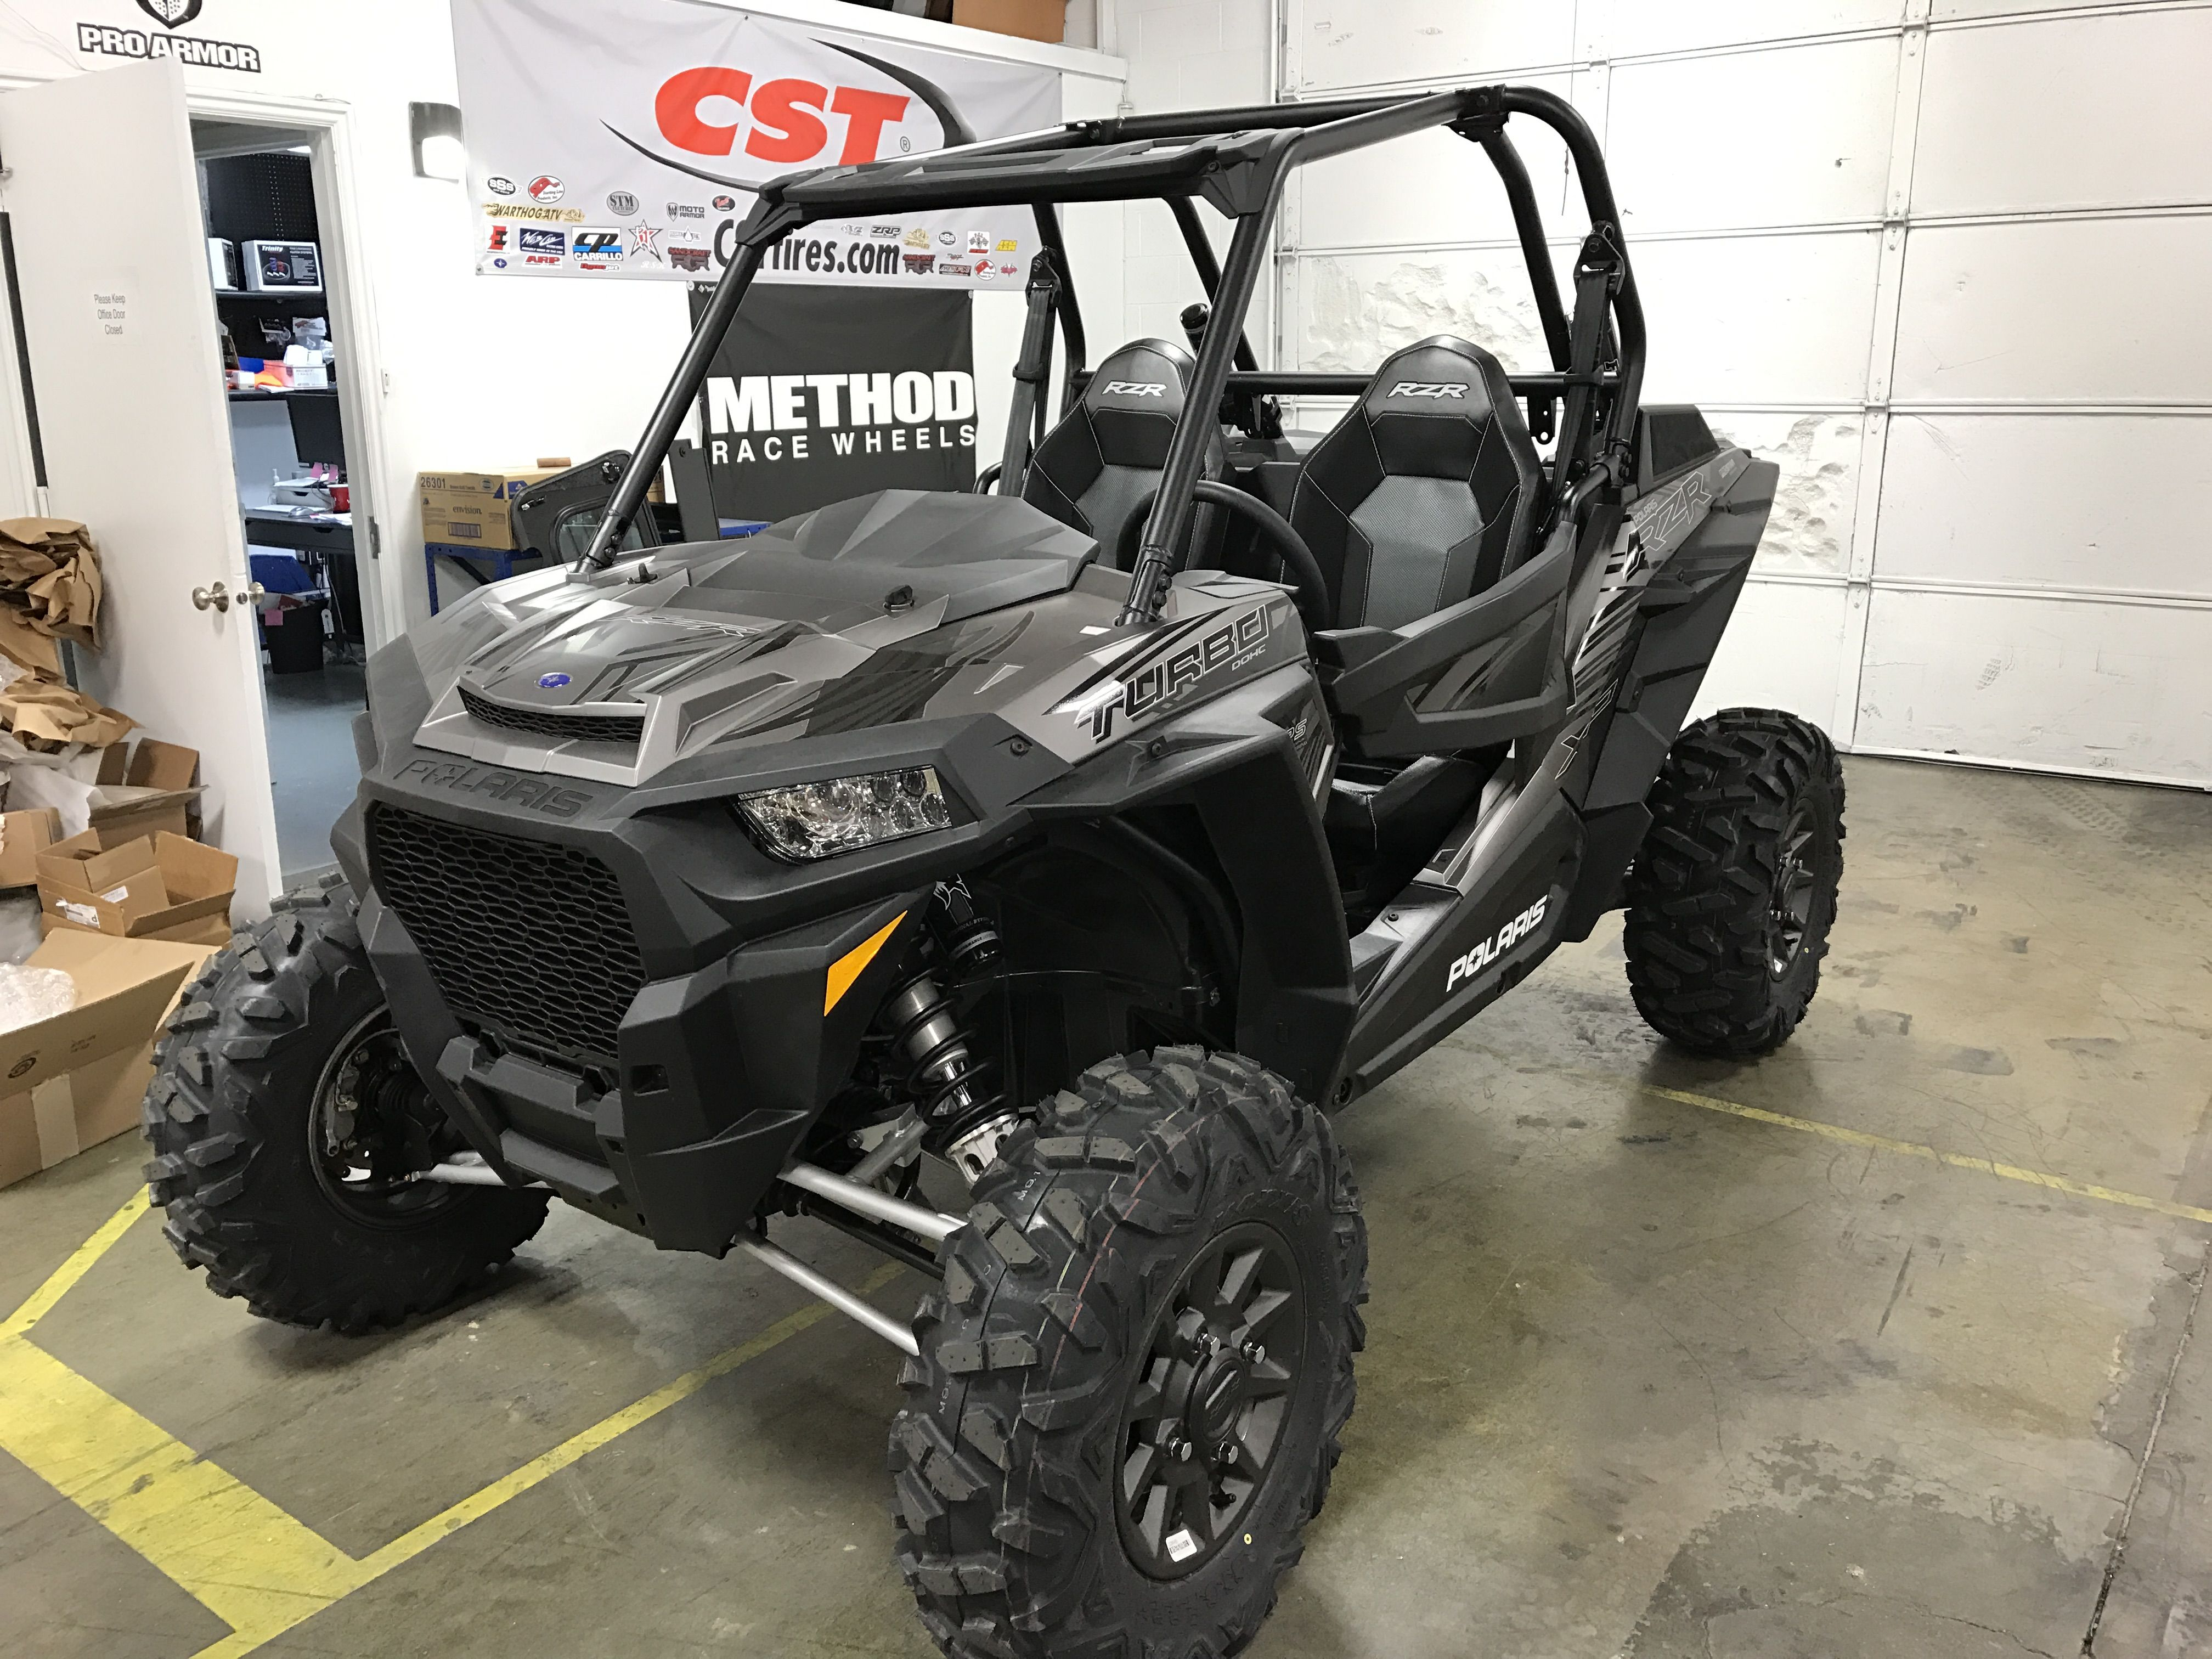 kombustion motorsports new 2017 rzr xp turbo shop build getting ready to be customized utv. Black Bedroom Furniture Sets. Home Design Ideas